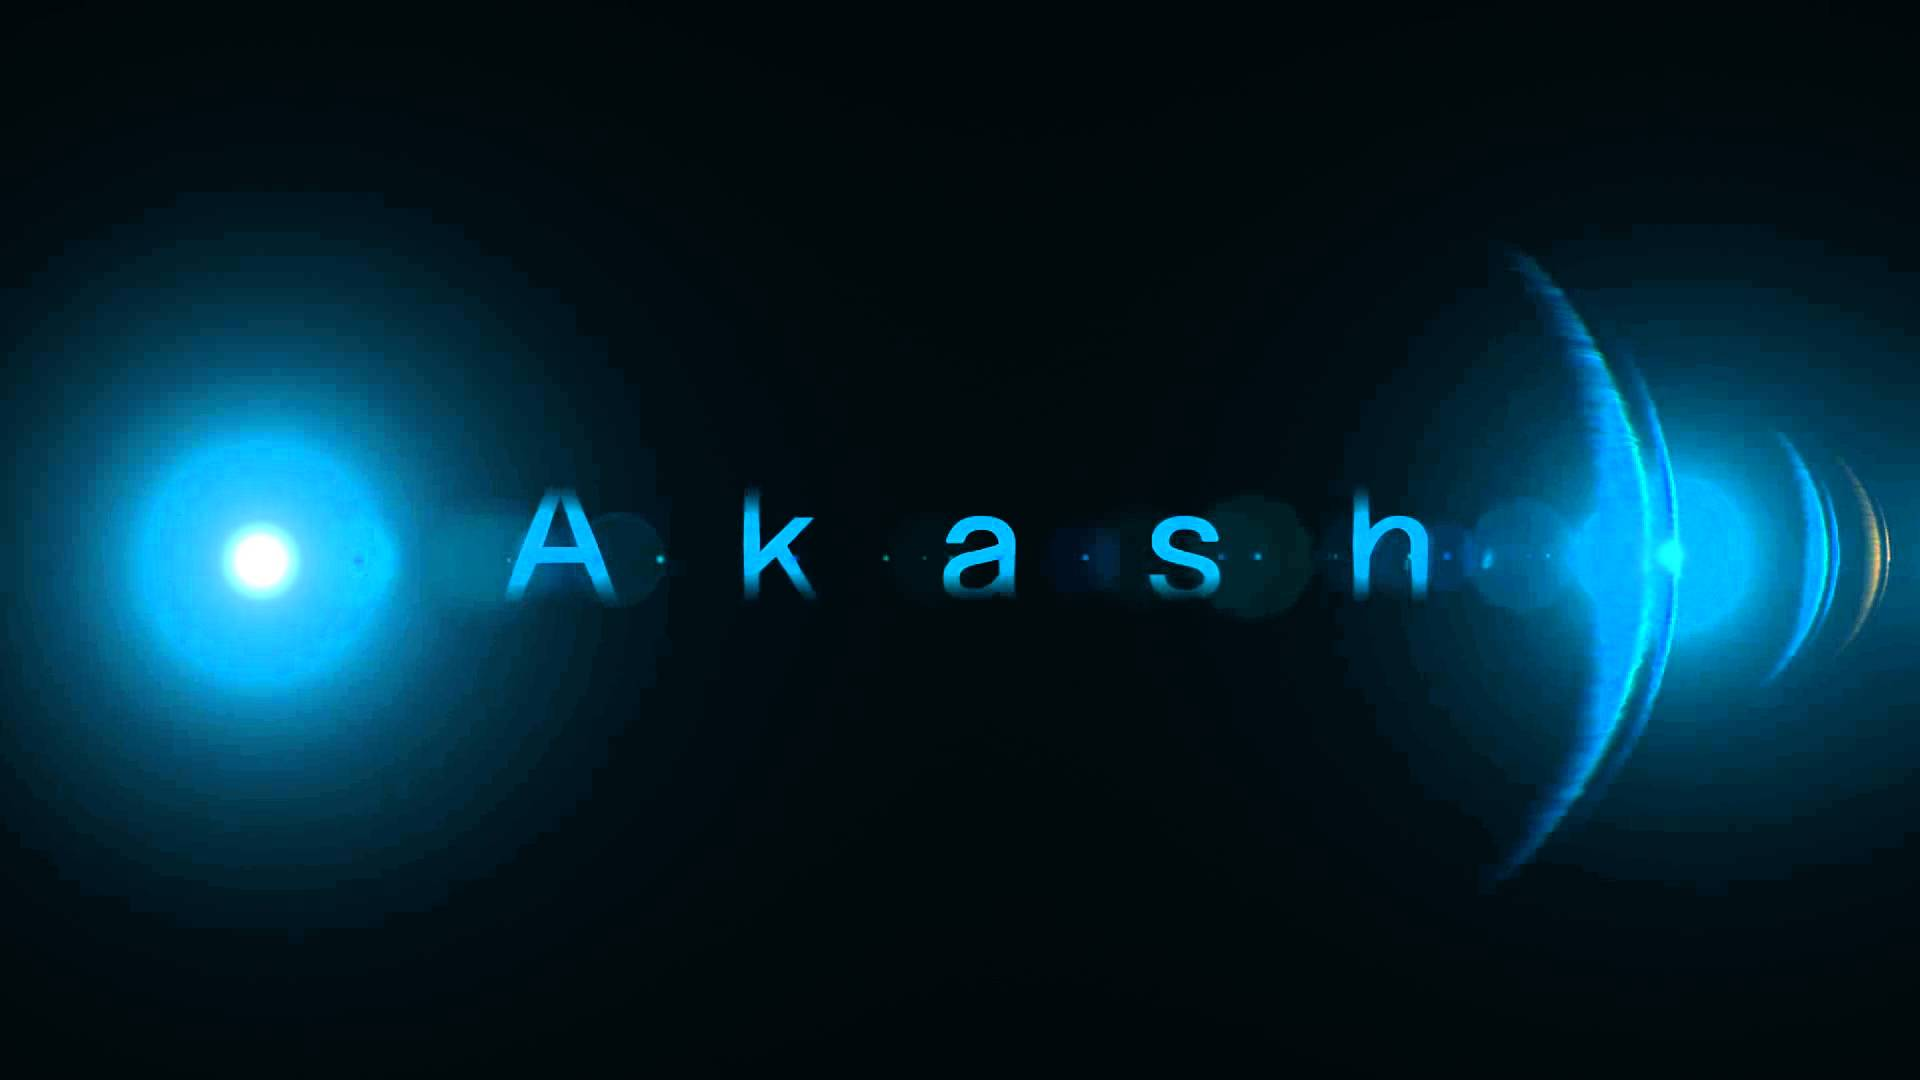 Download aakash name wallpaper gallery - A and s name wallpaper ...